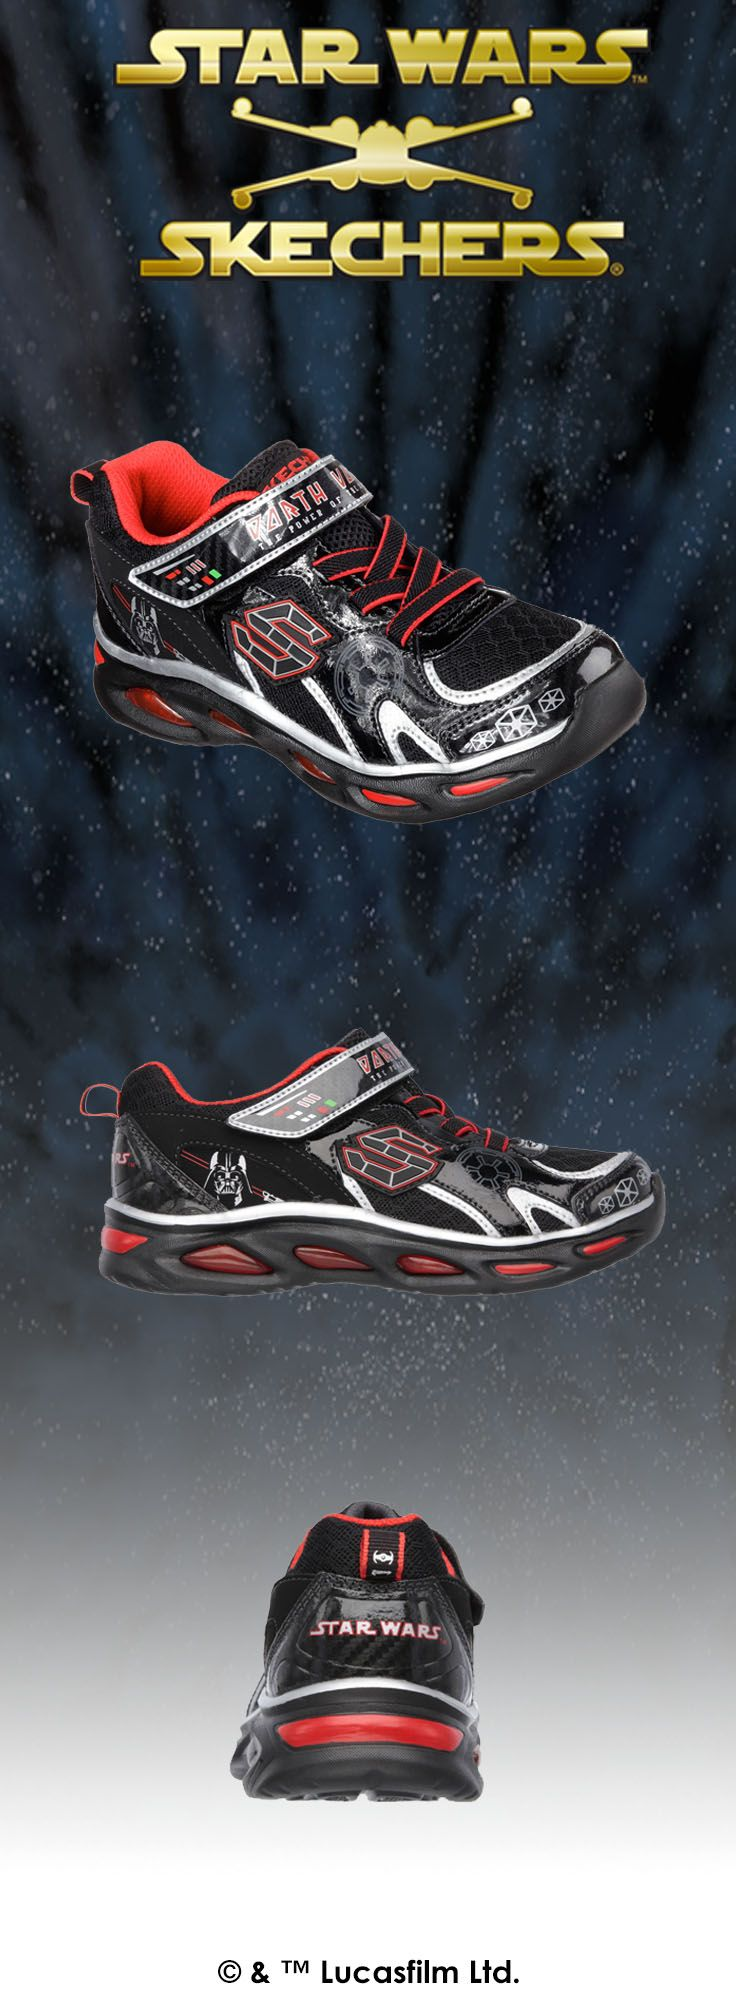 Experience the power of the Empire with Darth Vader™ and the Star Wars™ Skechers collection.   http://spr.ly/6004BuHwo